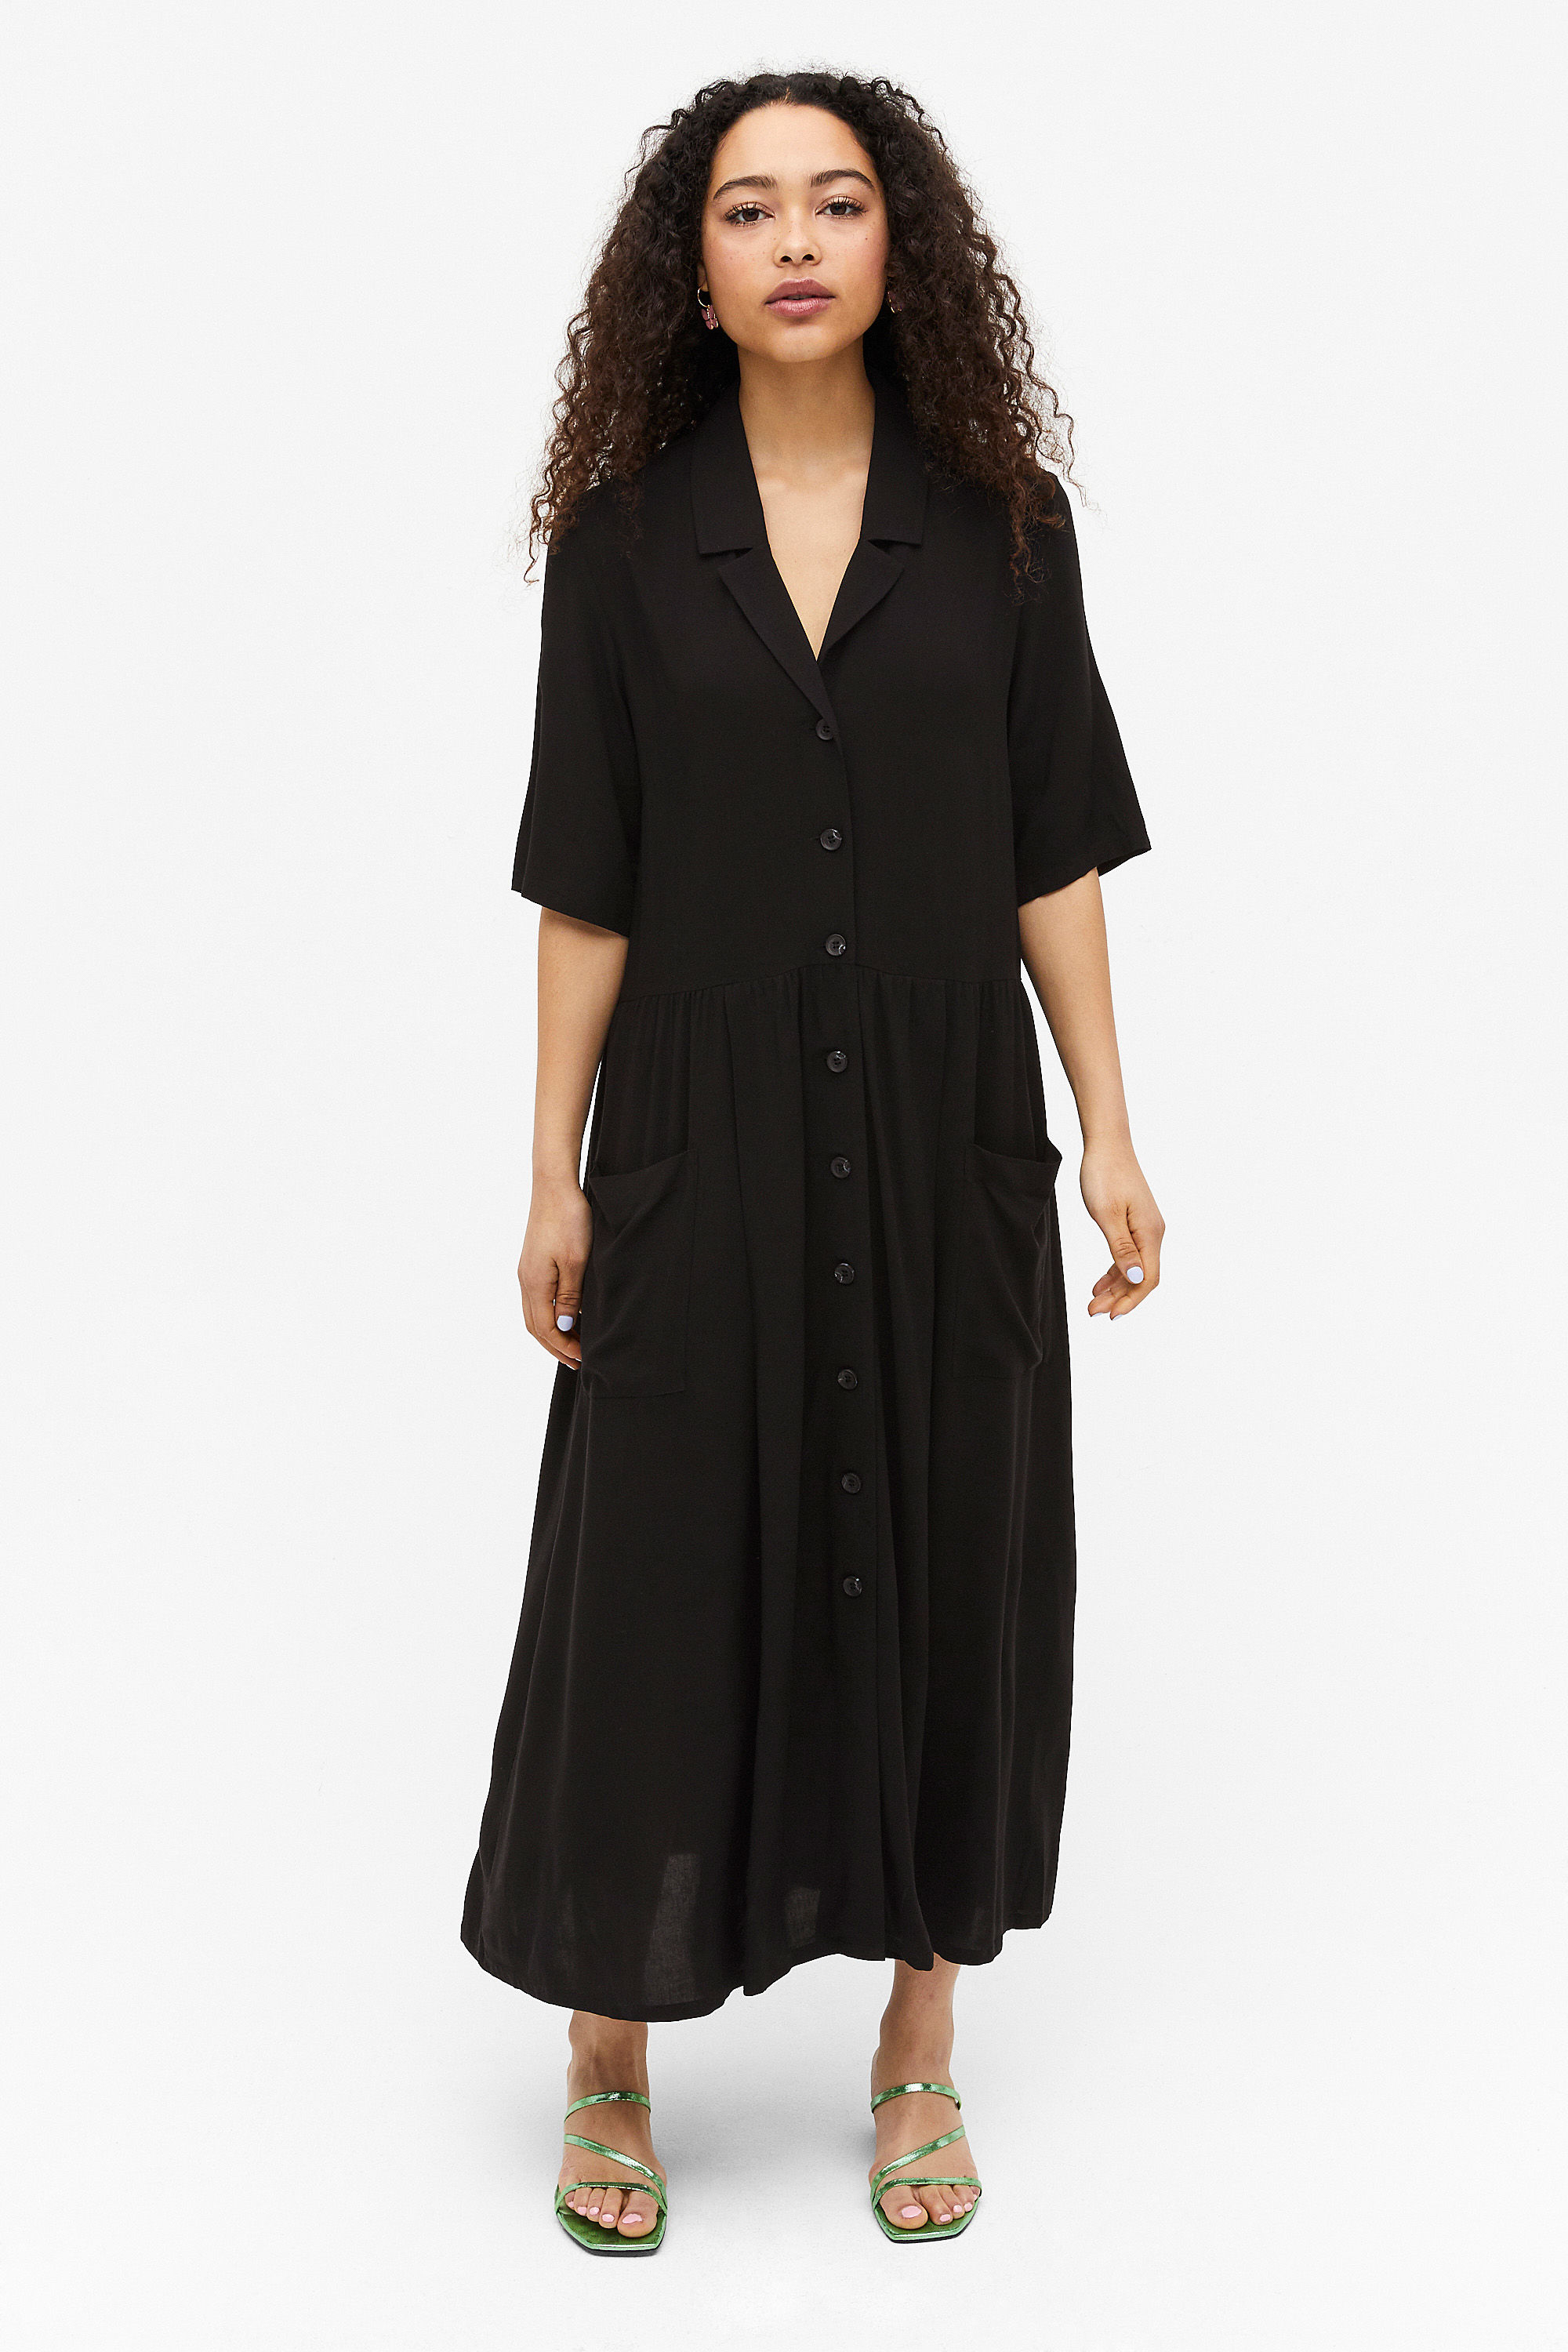 Monki Long Button up shirt dress £35